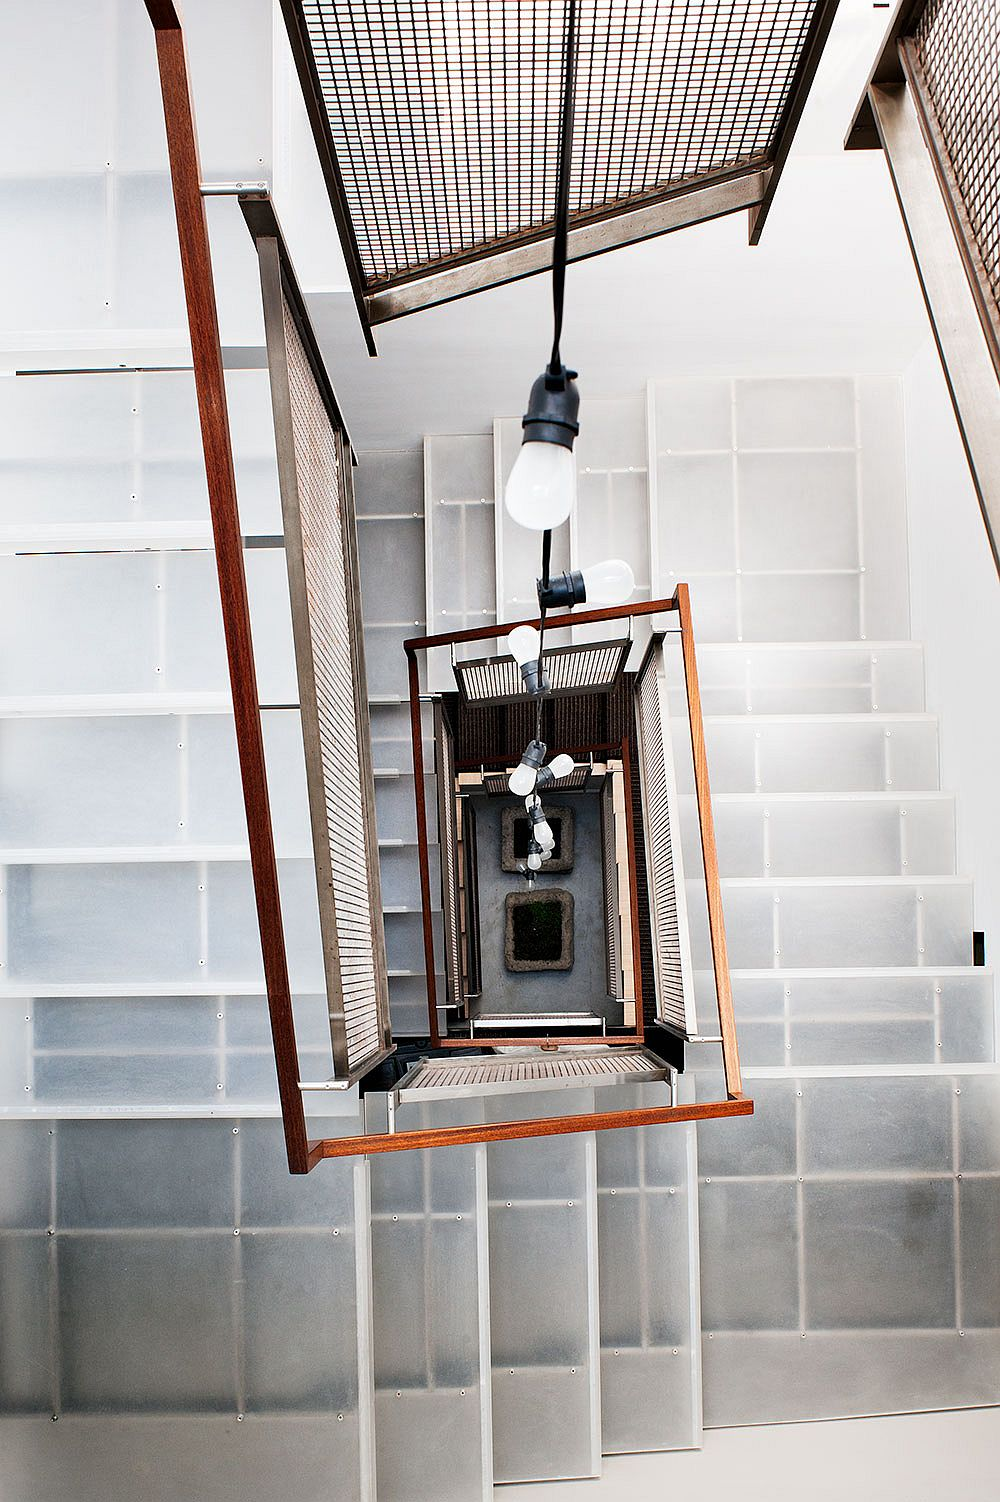 A look at the staircase from the top master suite level of the Noe Valley Residence